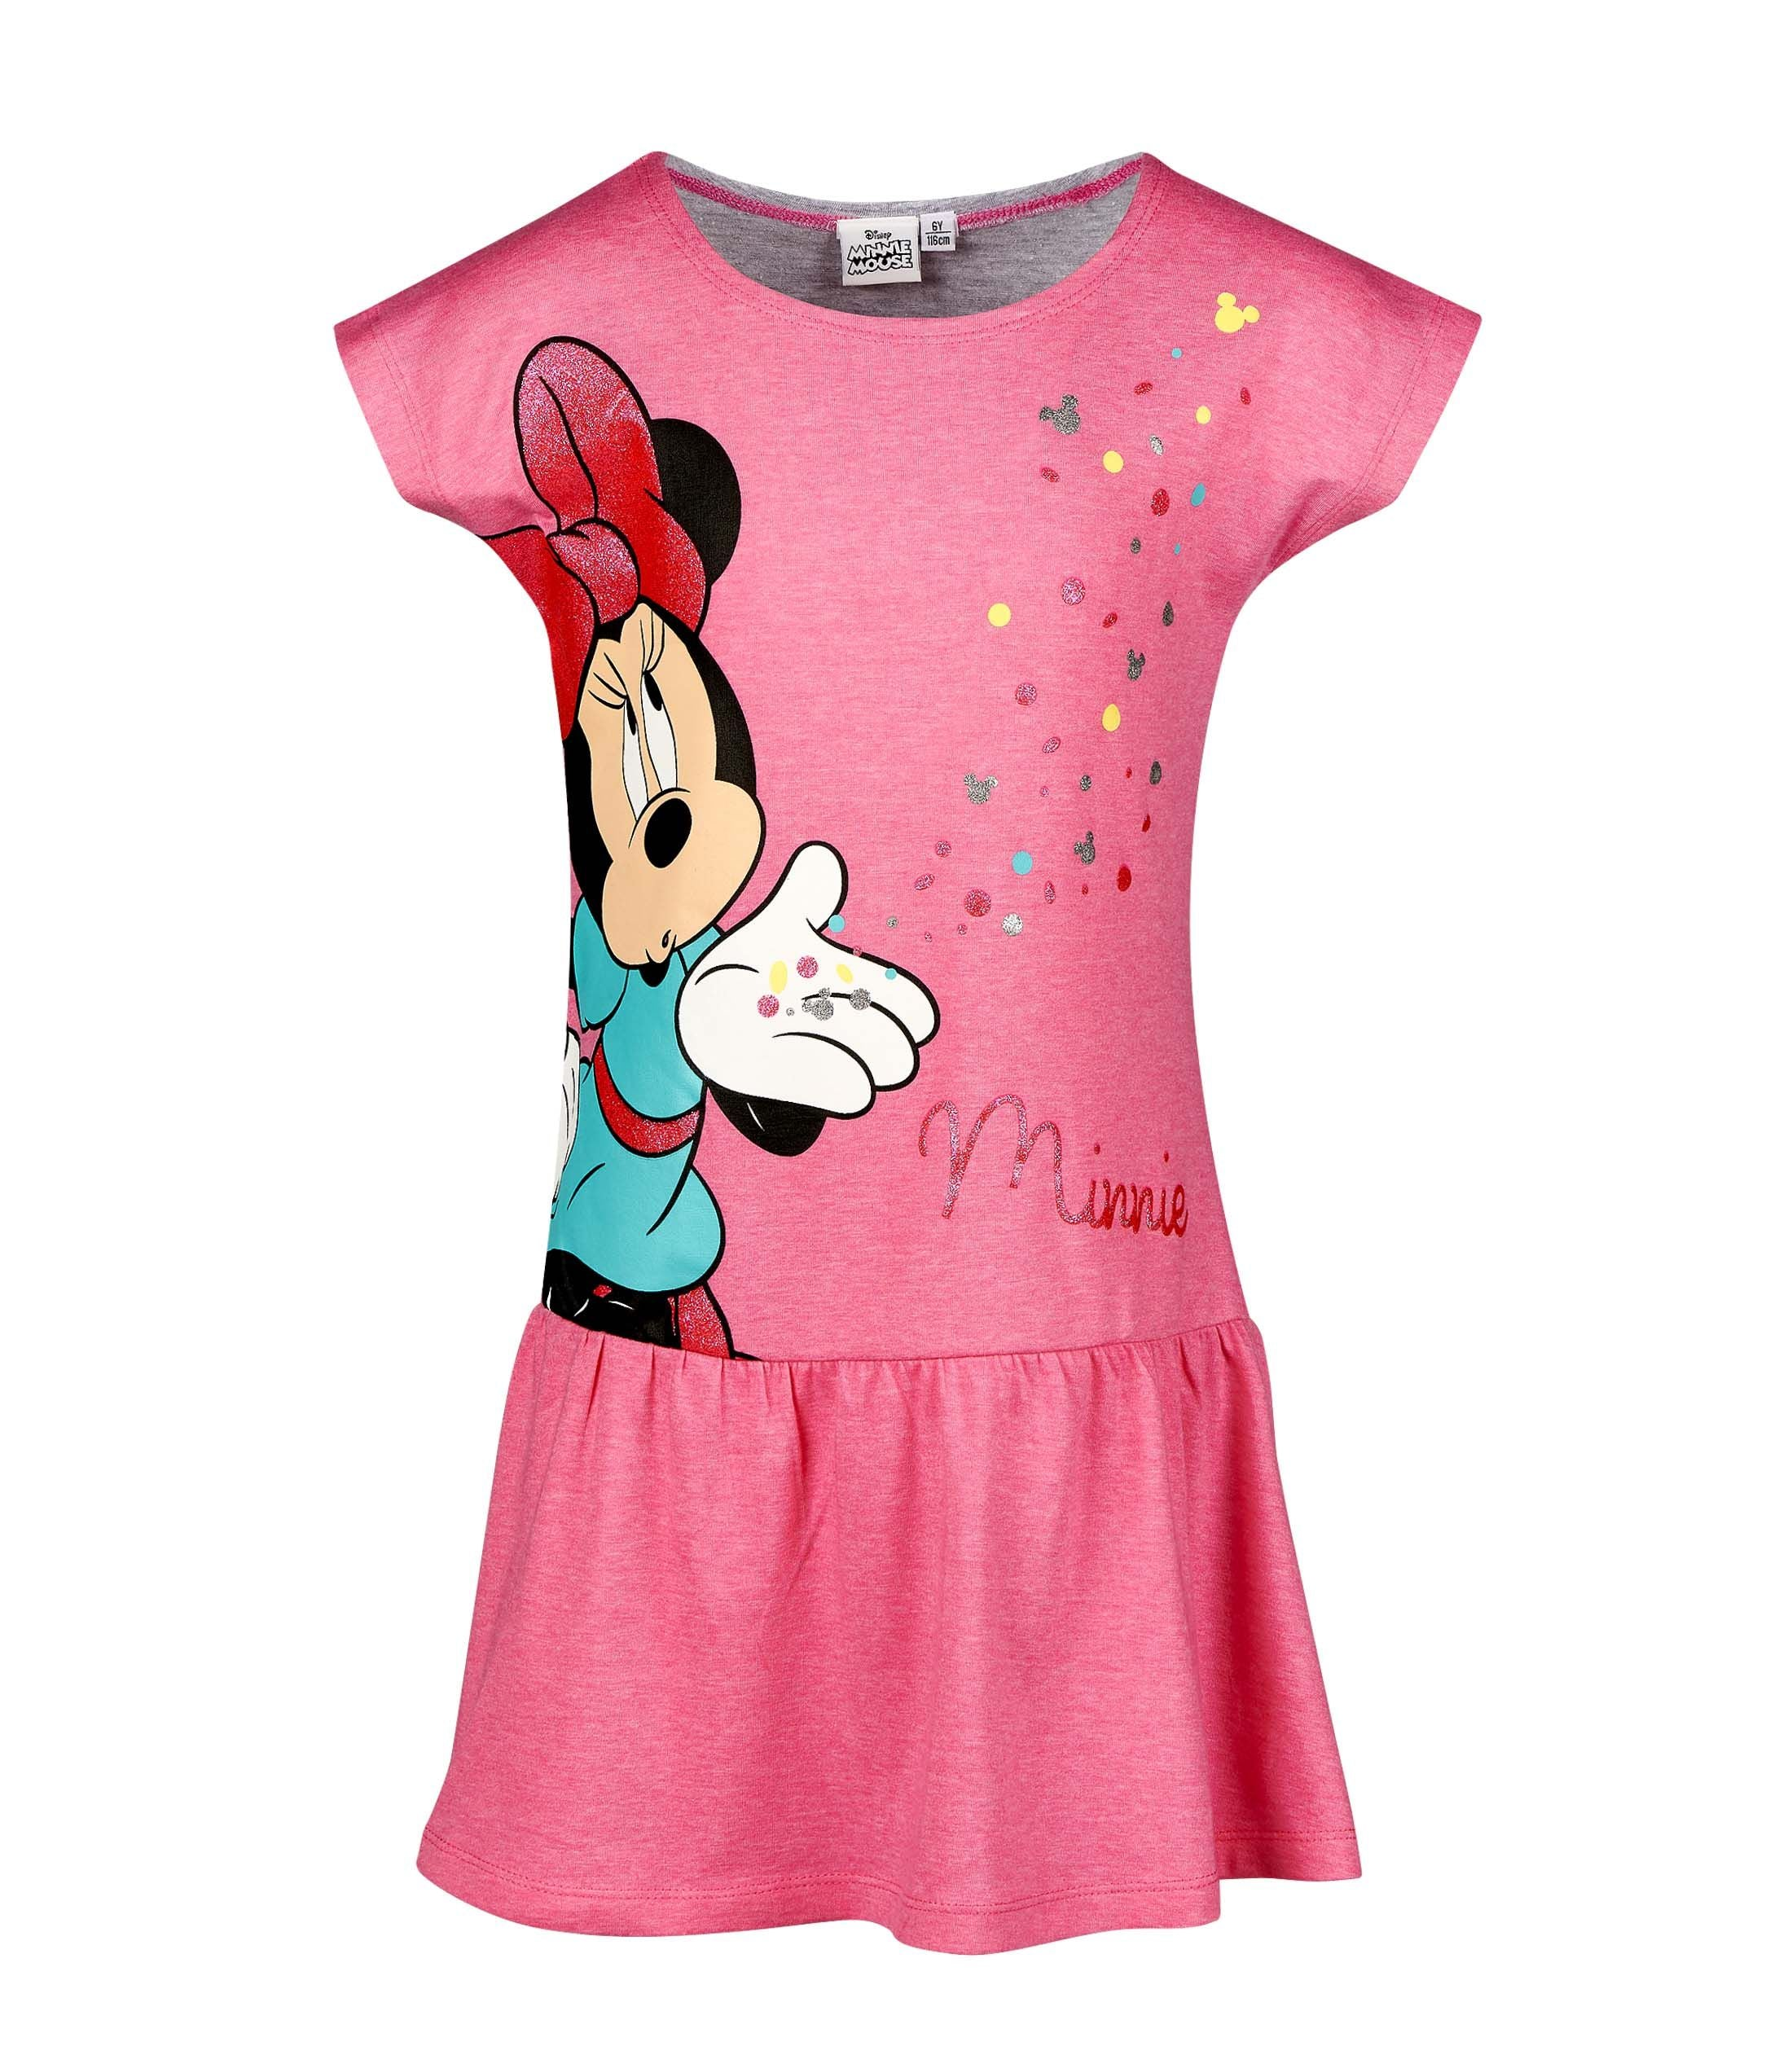 a8b53ede9689 Girls Dress Disney's Minnie Mouse - Fuchsia – LUC BAUER